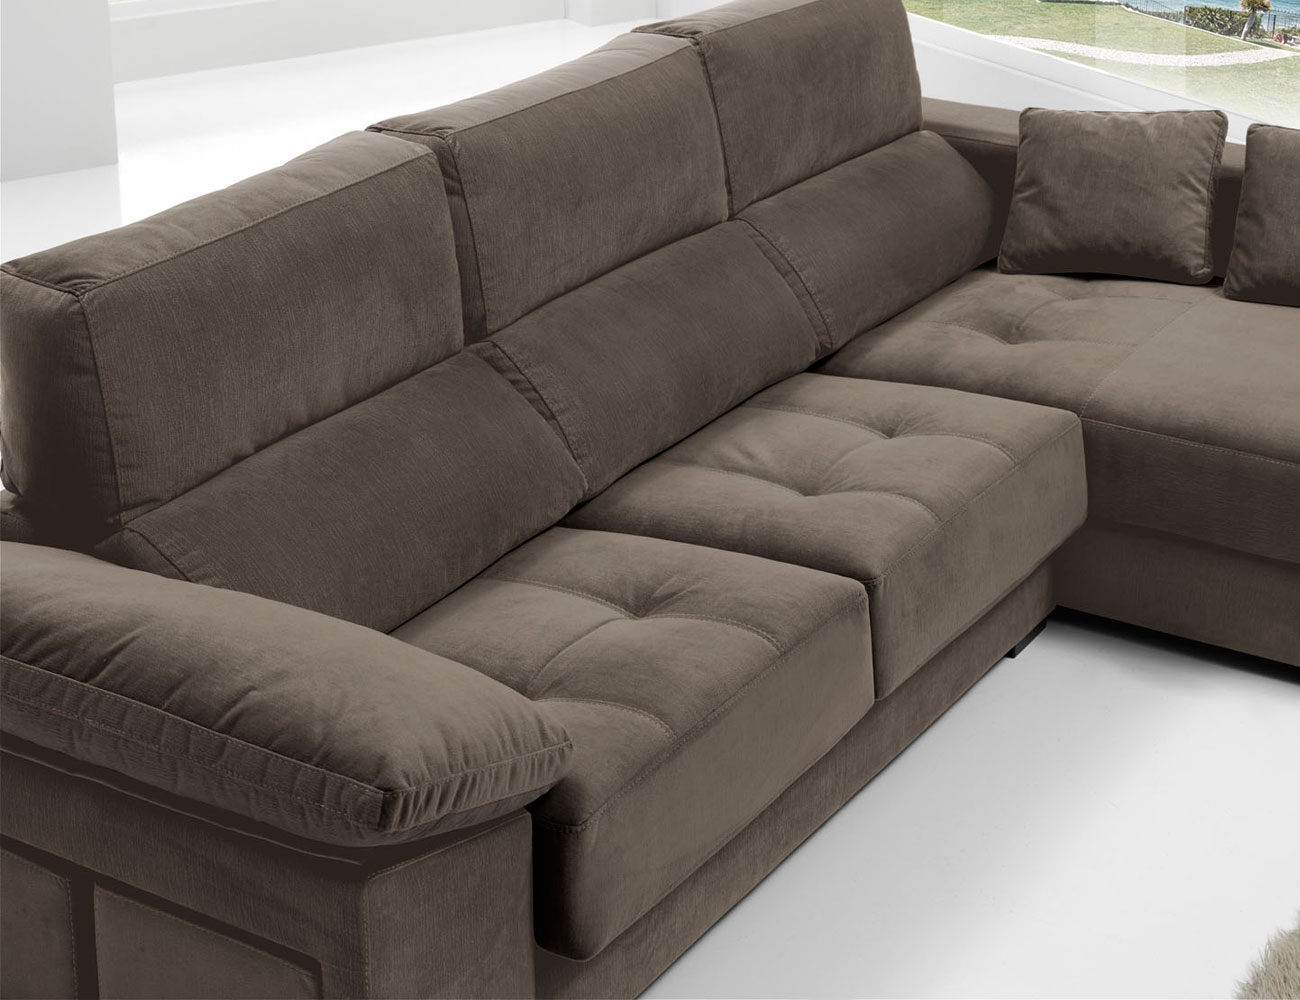 Sofa chaiselongue anti manchas bering pouf 214